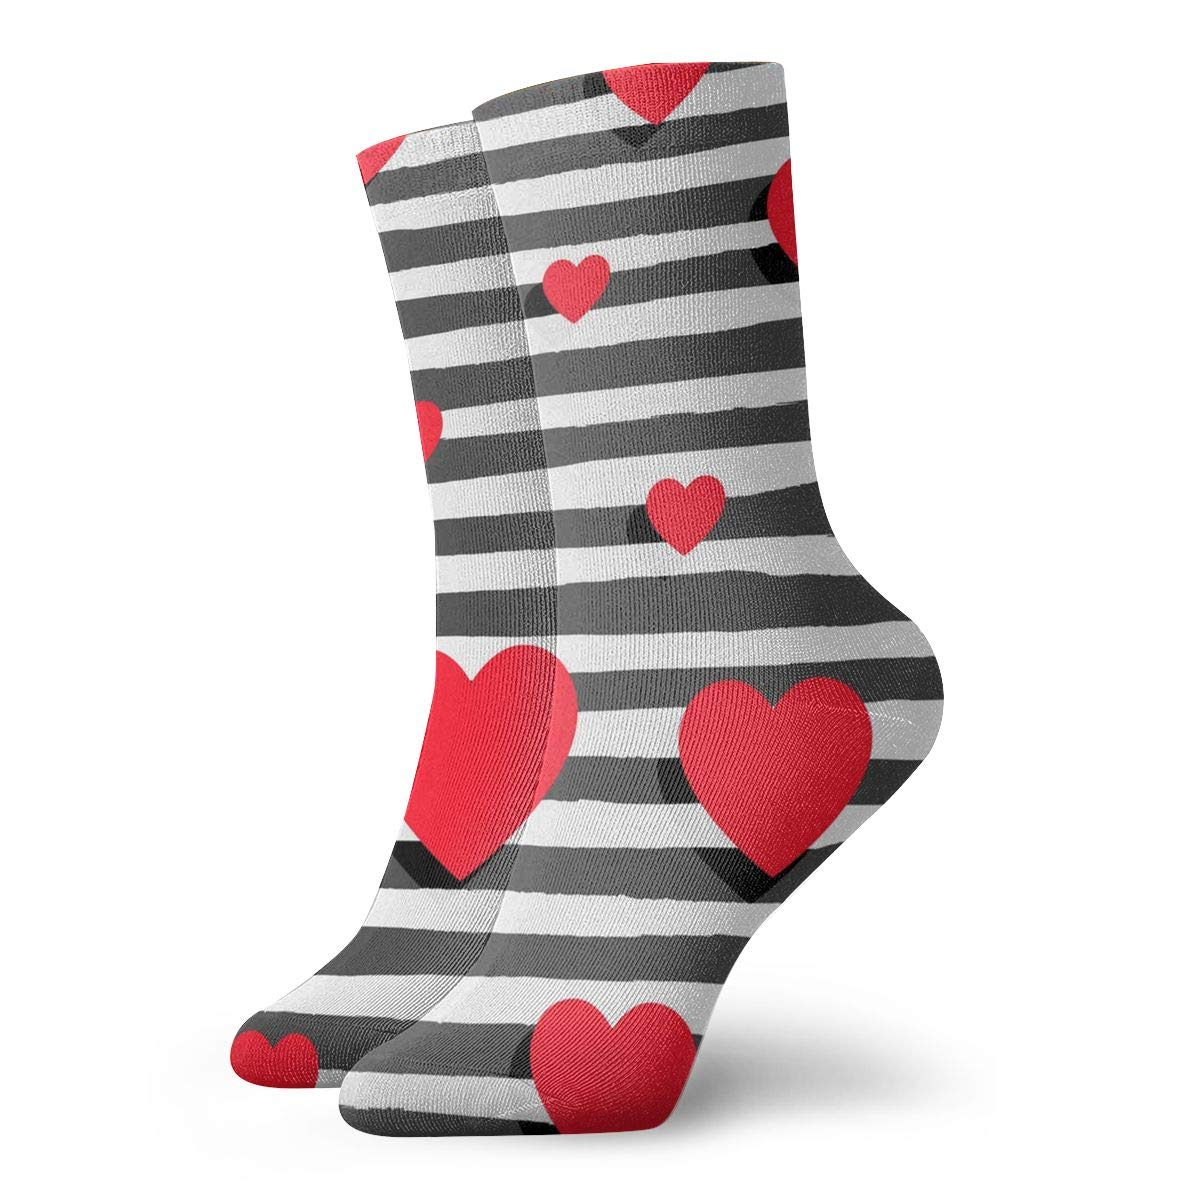 Background With Hearts And Stripes Unisex Funny Casual Crew Socks Athletic Socks For Boys Girls Kids Teenagers